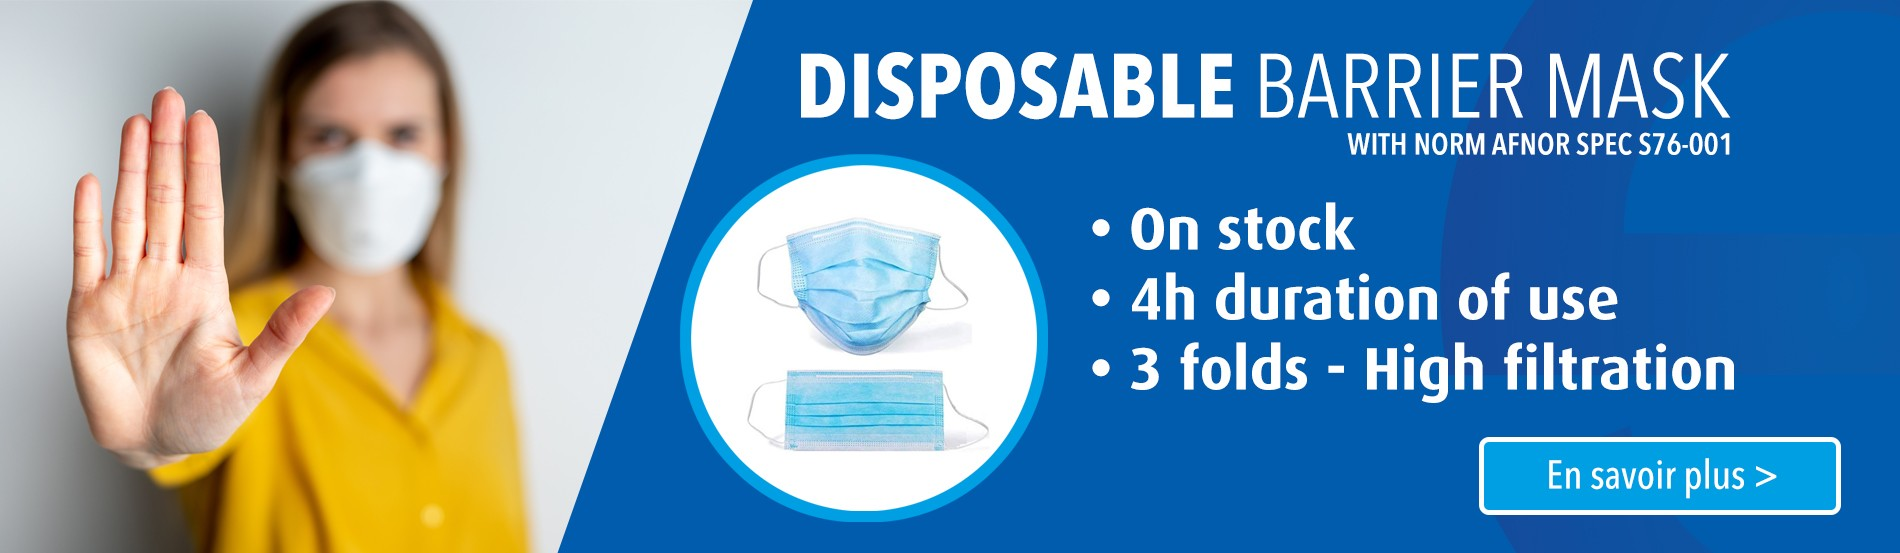 Disposable Barrier Mask